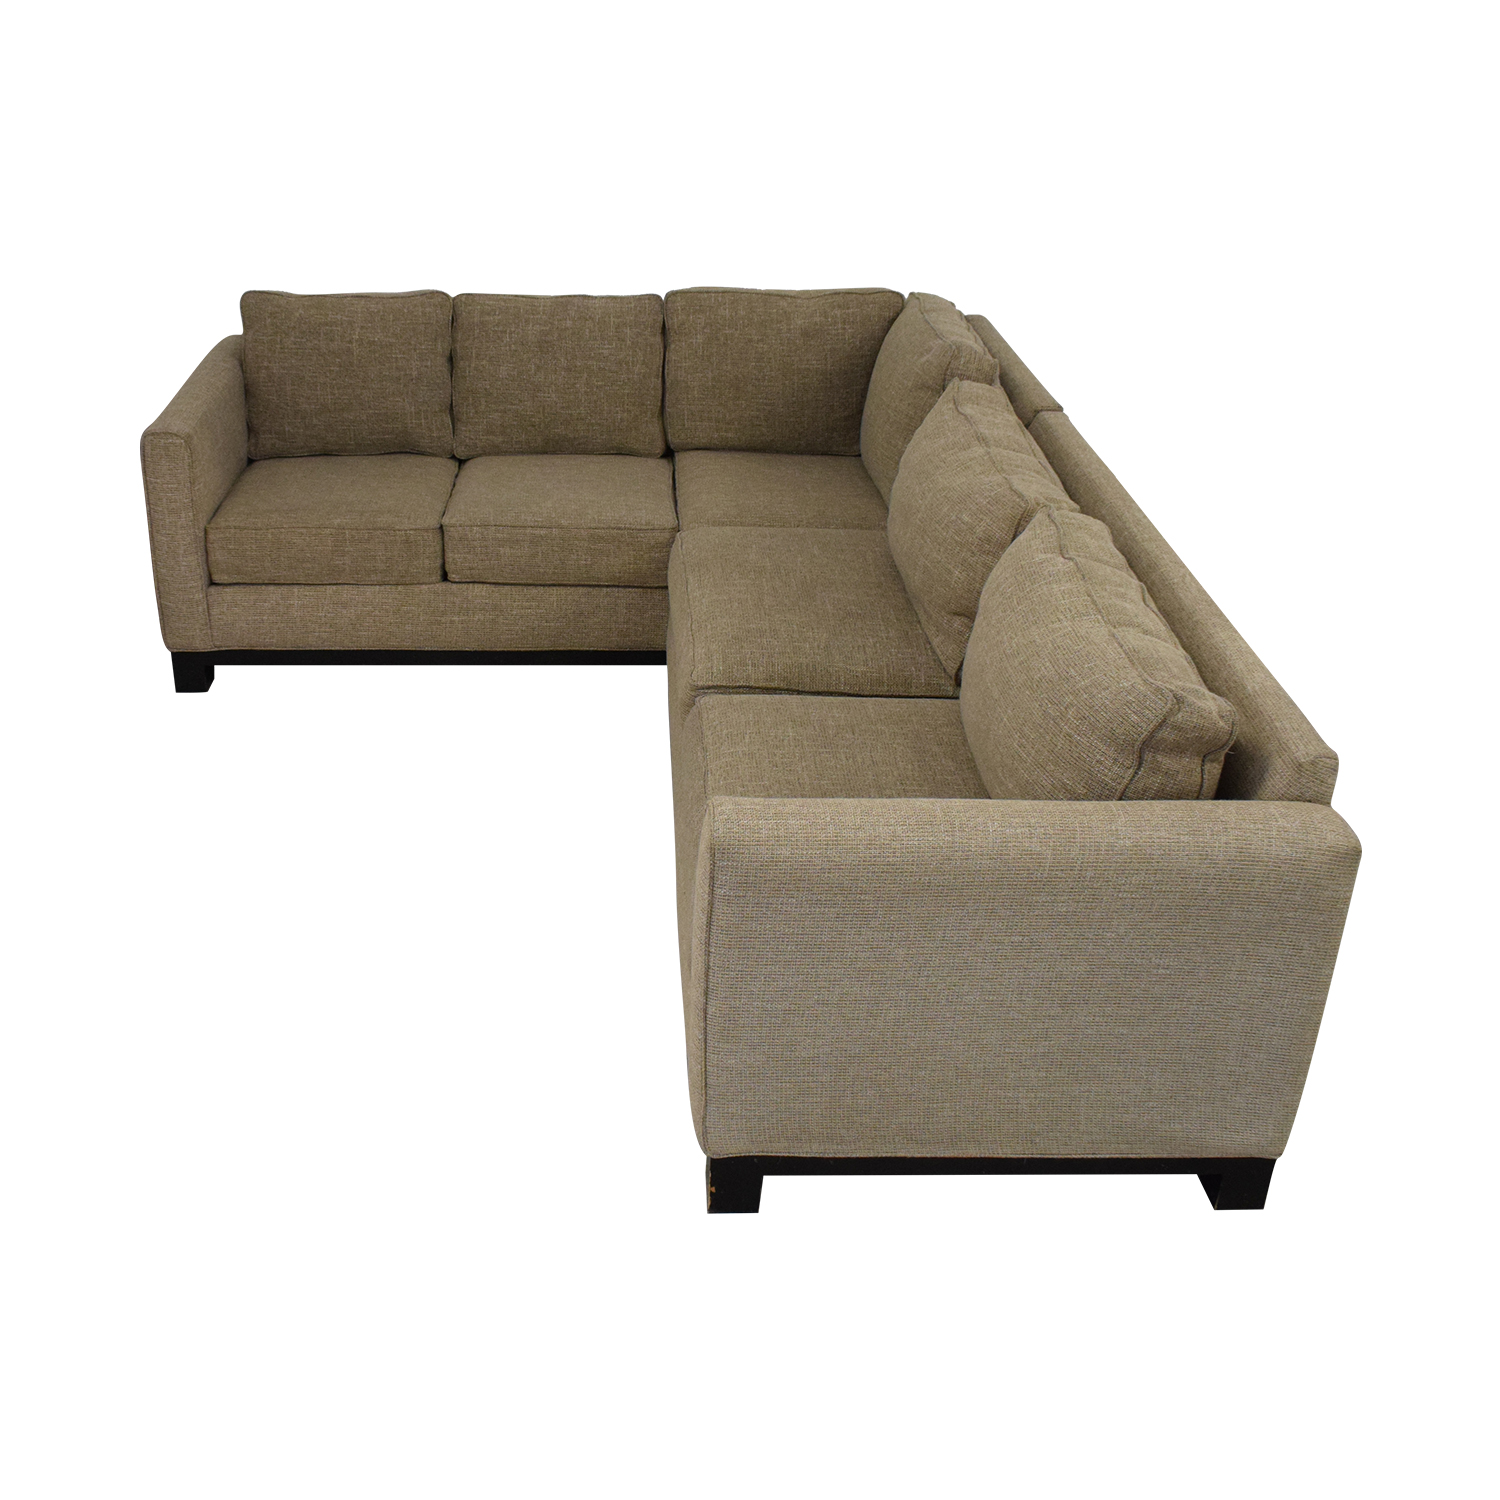 Marvelous 71 Off Dwell Home Furnishings Dwell Home Furnishings Sectional Sofa Sofas Gmtry Best Dining Table And Chair Ideas Images Gmtryco